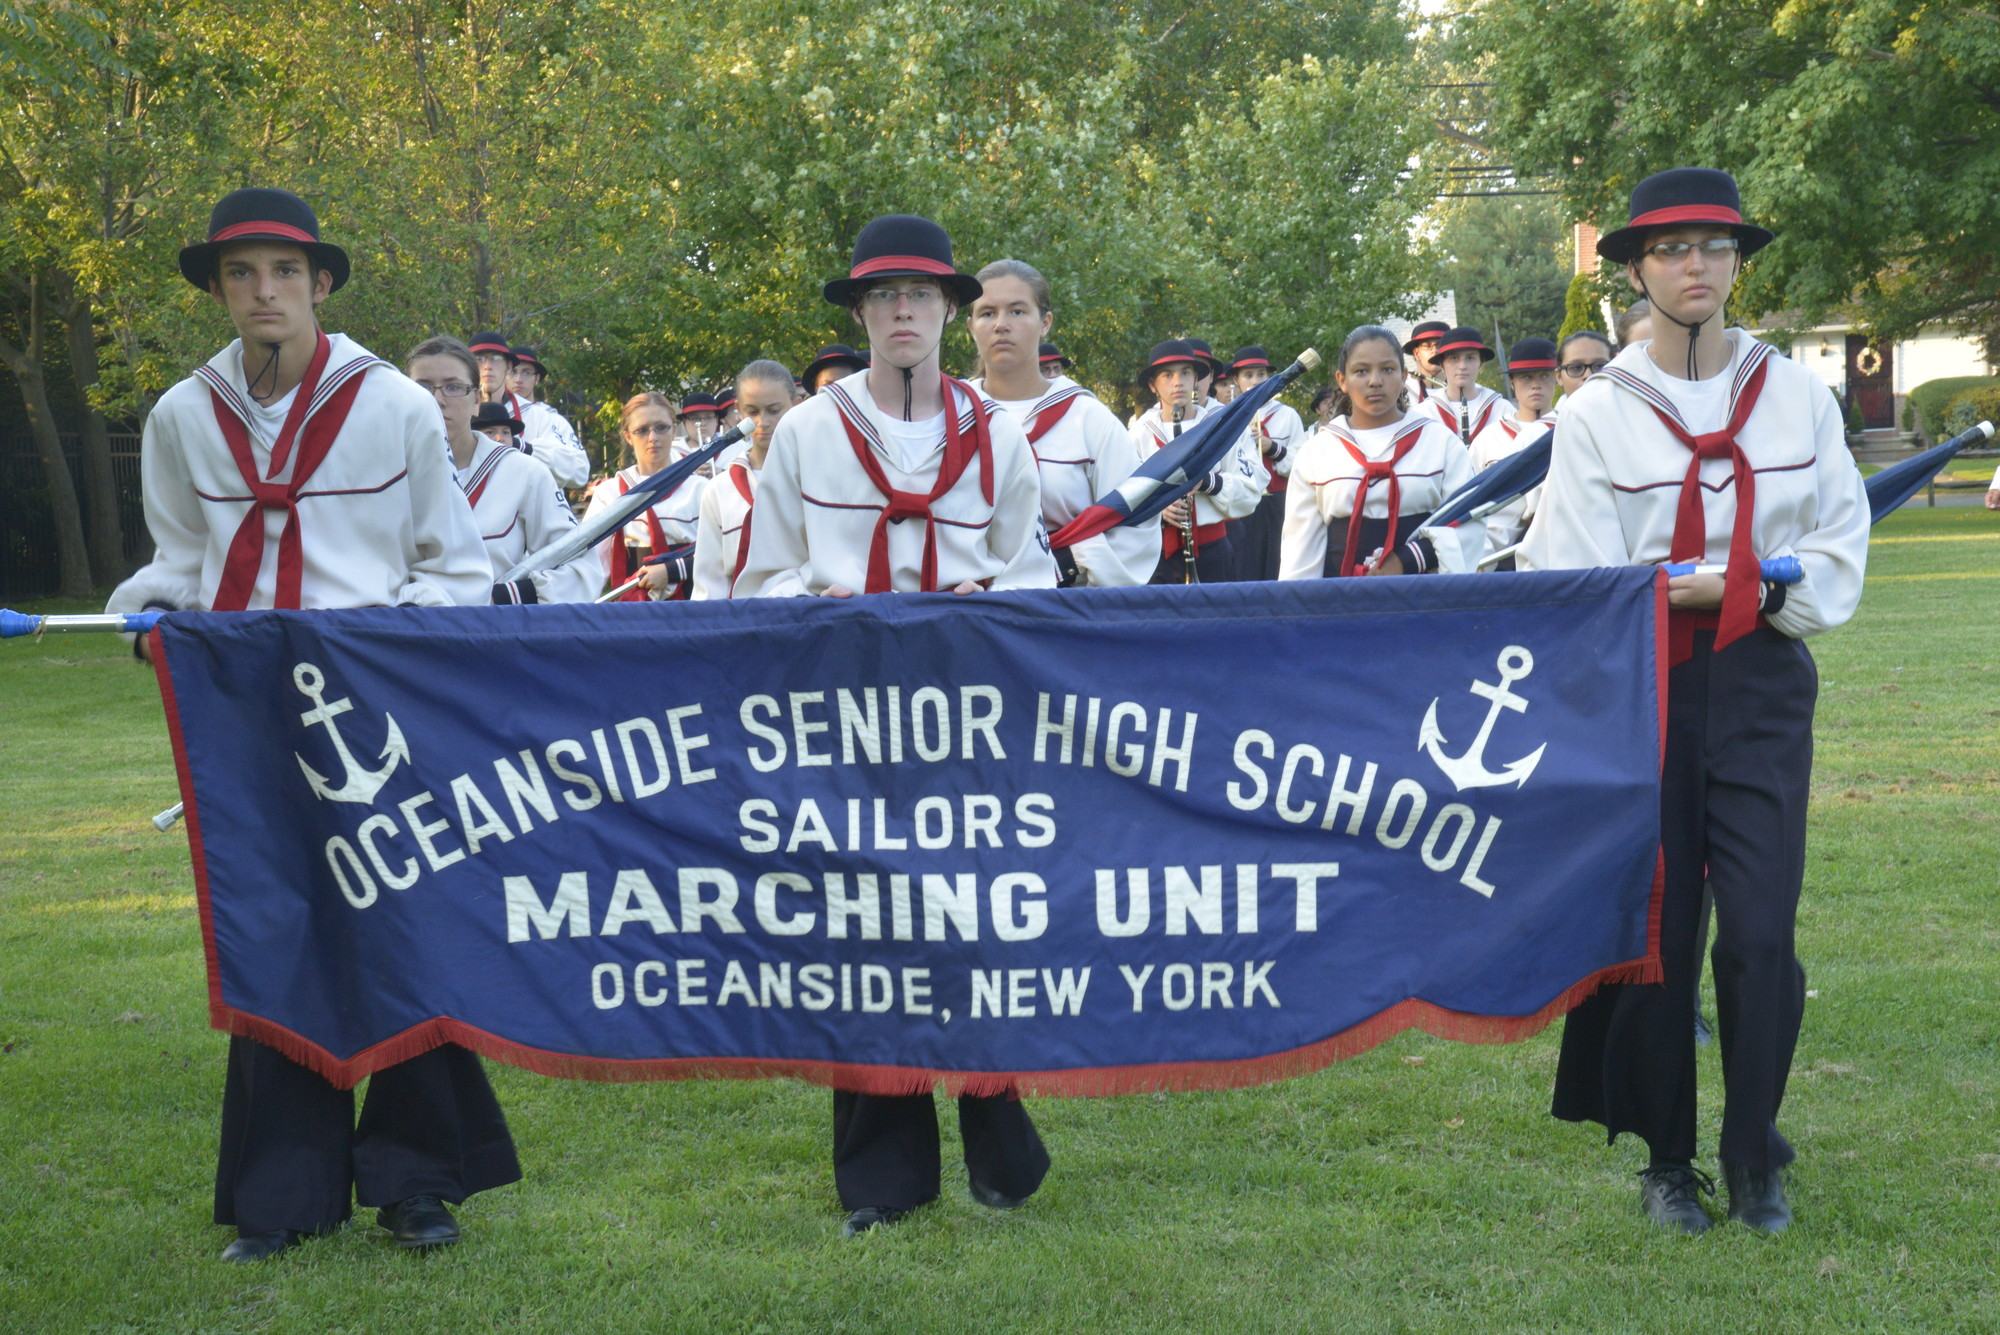 The Oceanside High School marching band took part in the ceremony